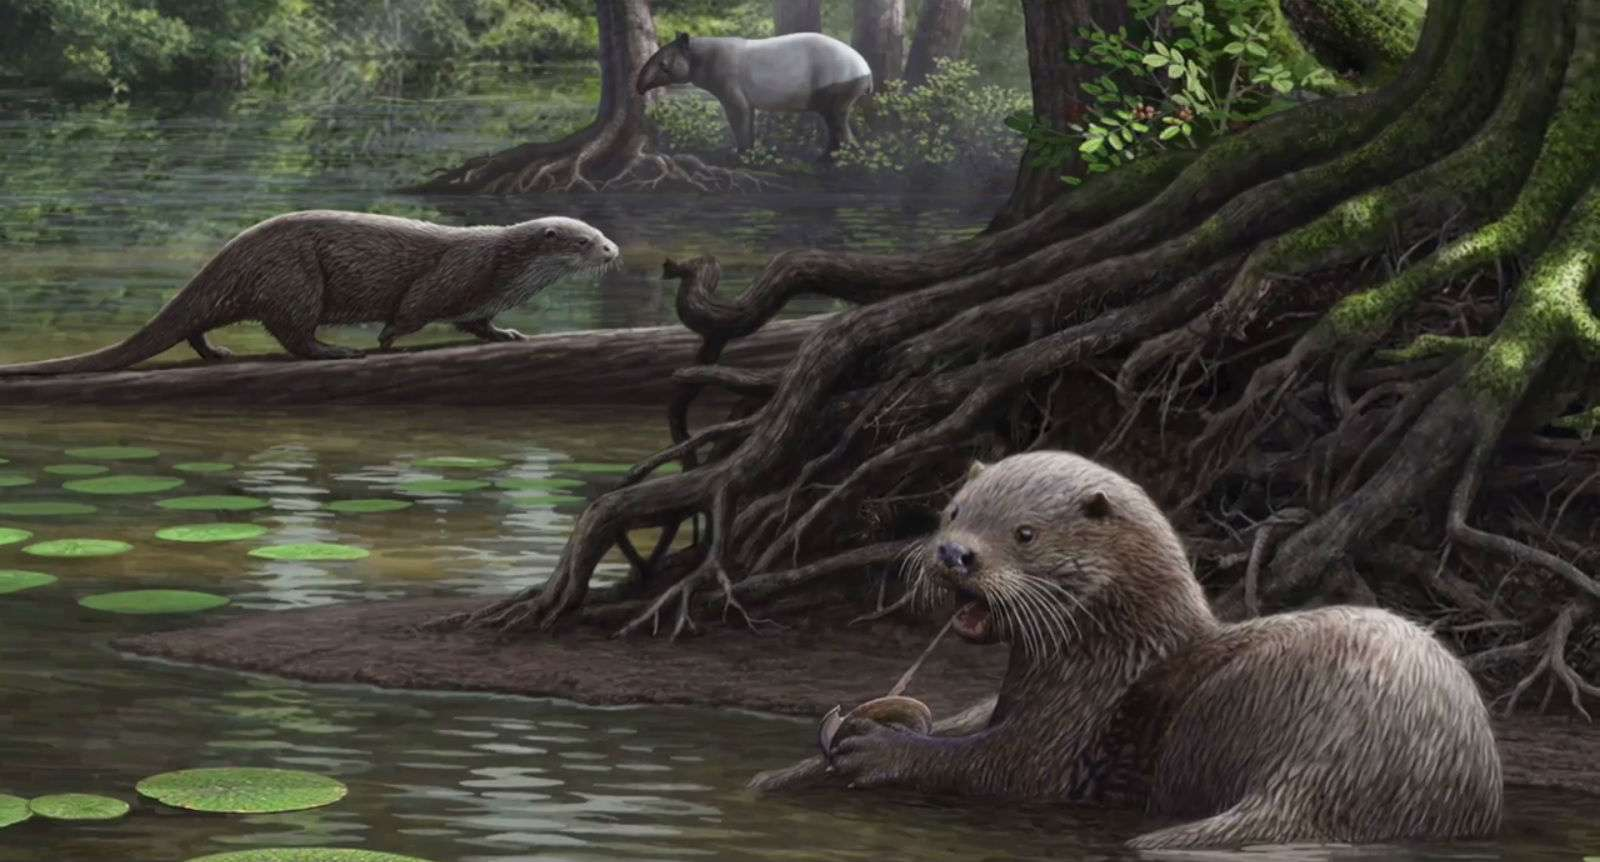 Giant otters on the water